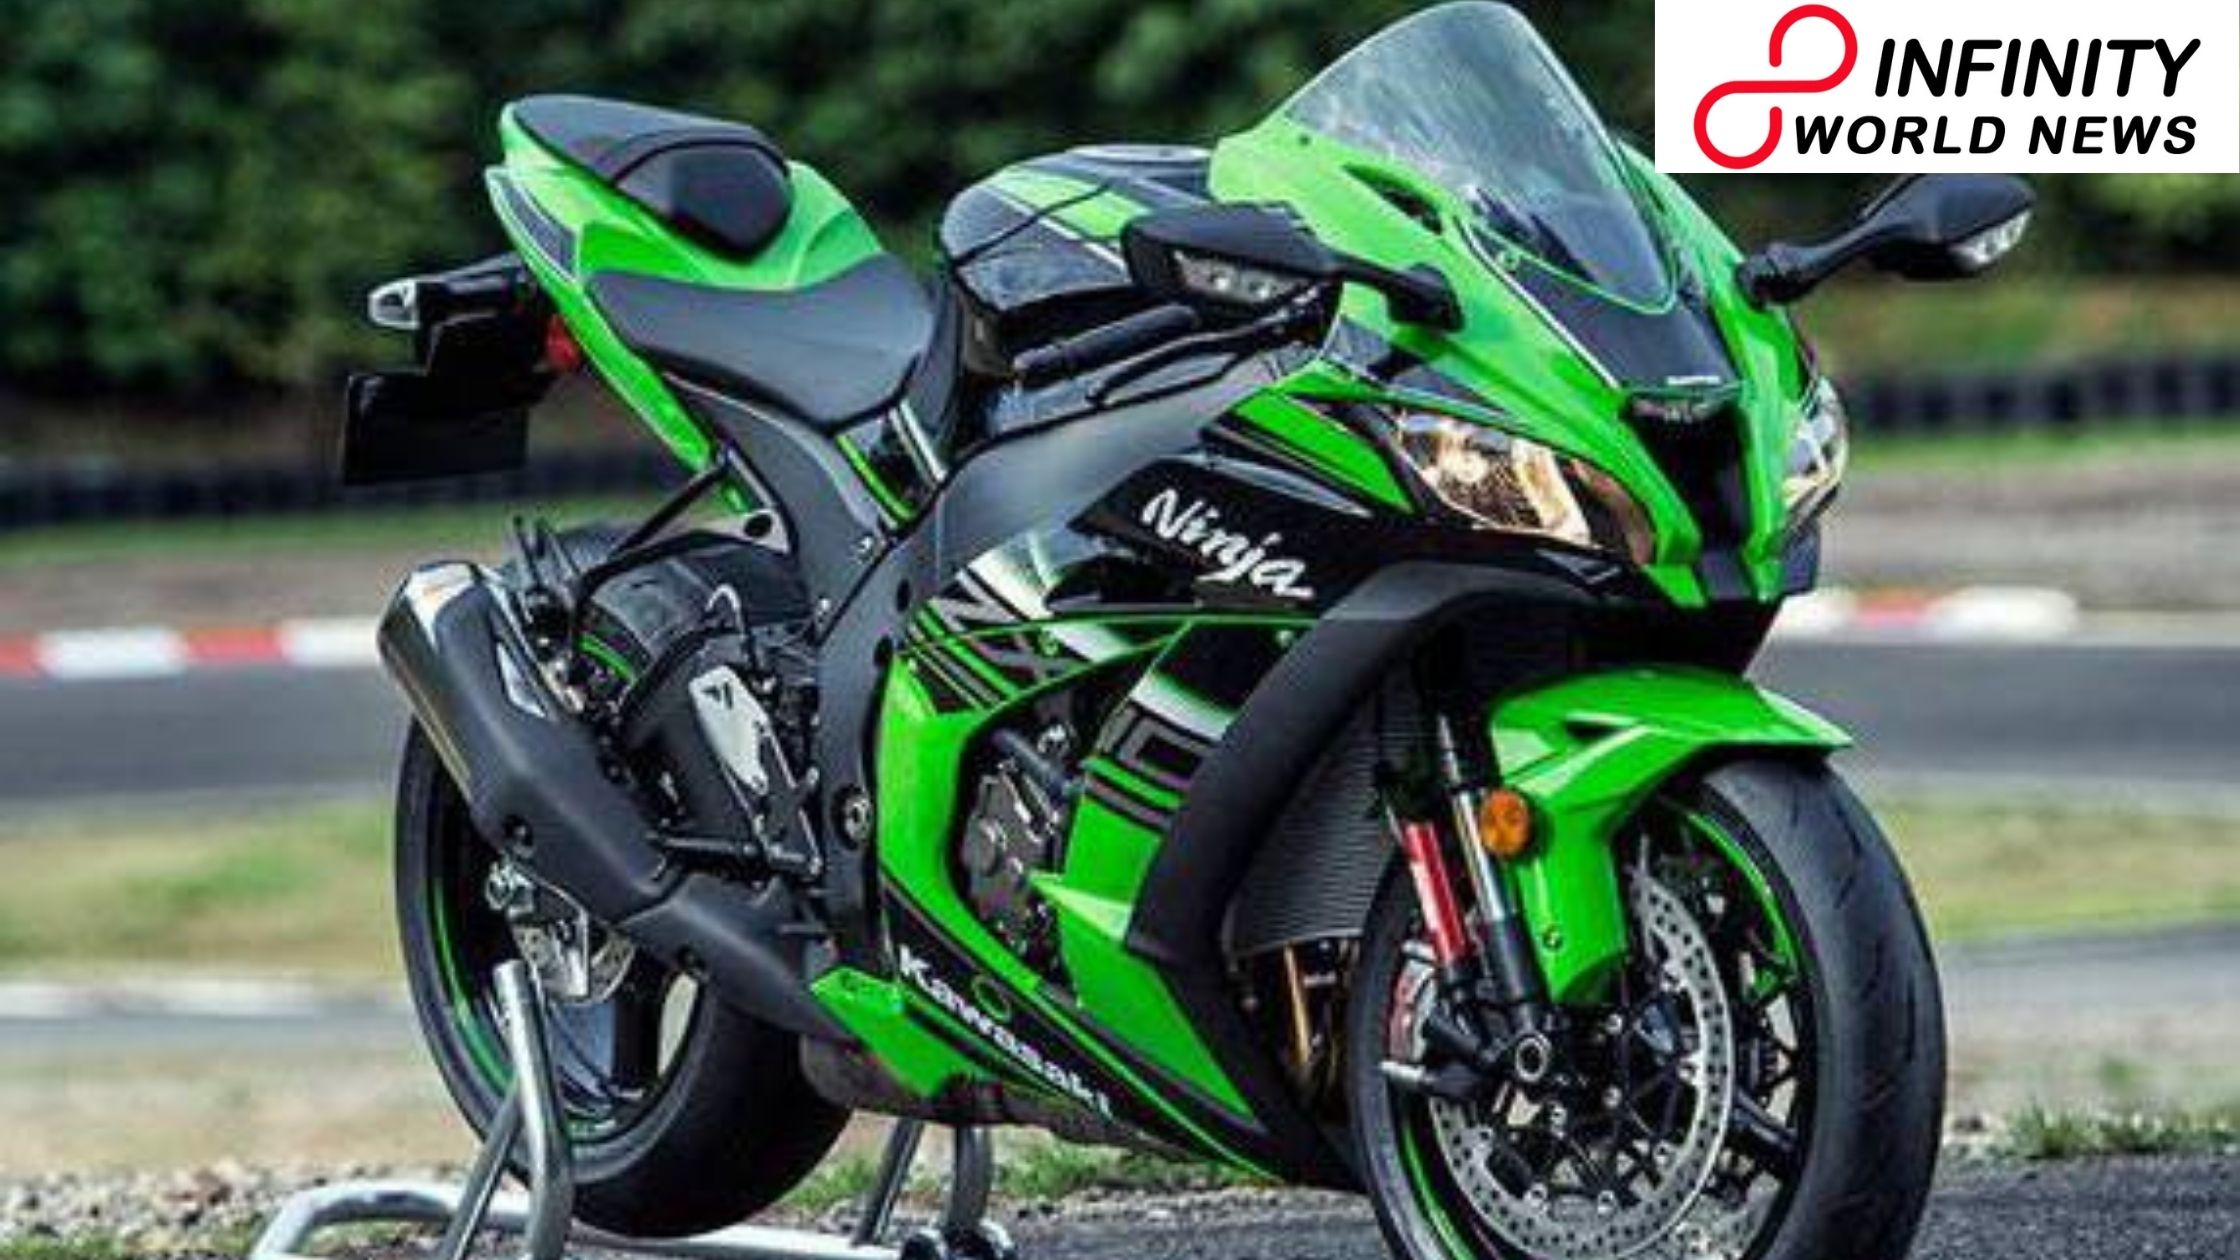 Kawasaki gets the caps off the NEW ZX-10RR machine